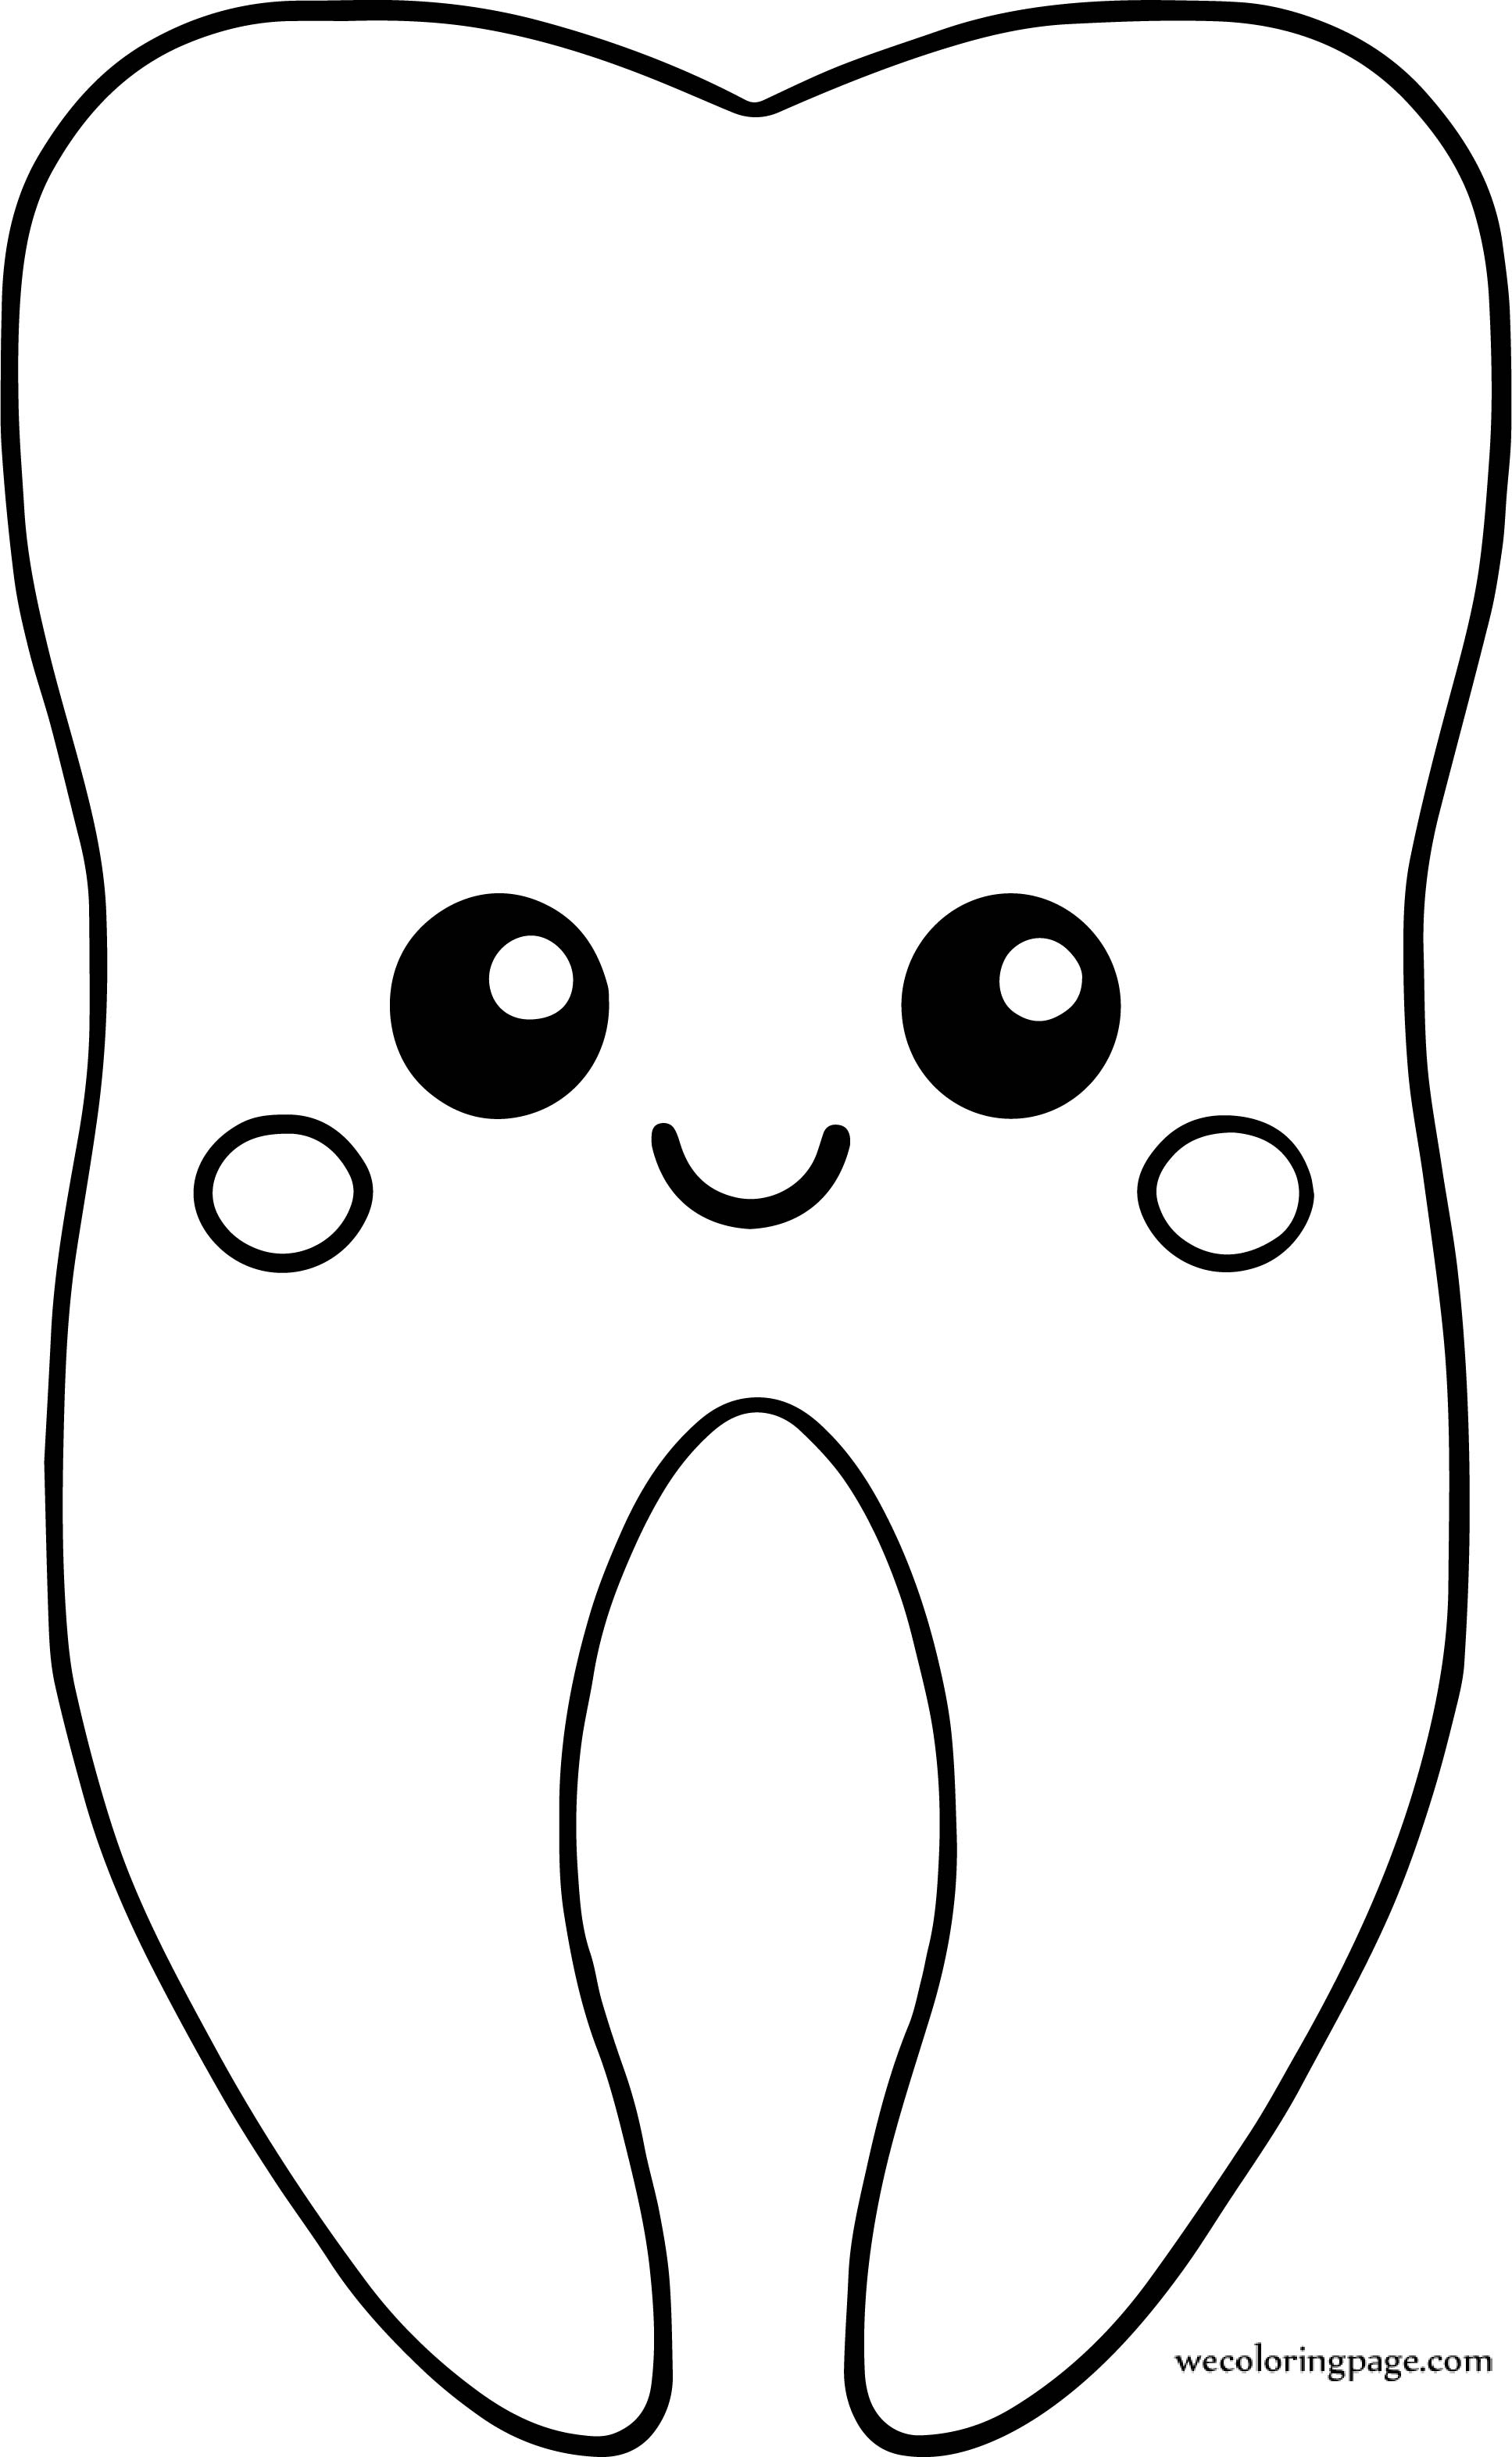 Tooth Very Cute Dental Teeth Coloring Page